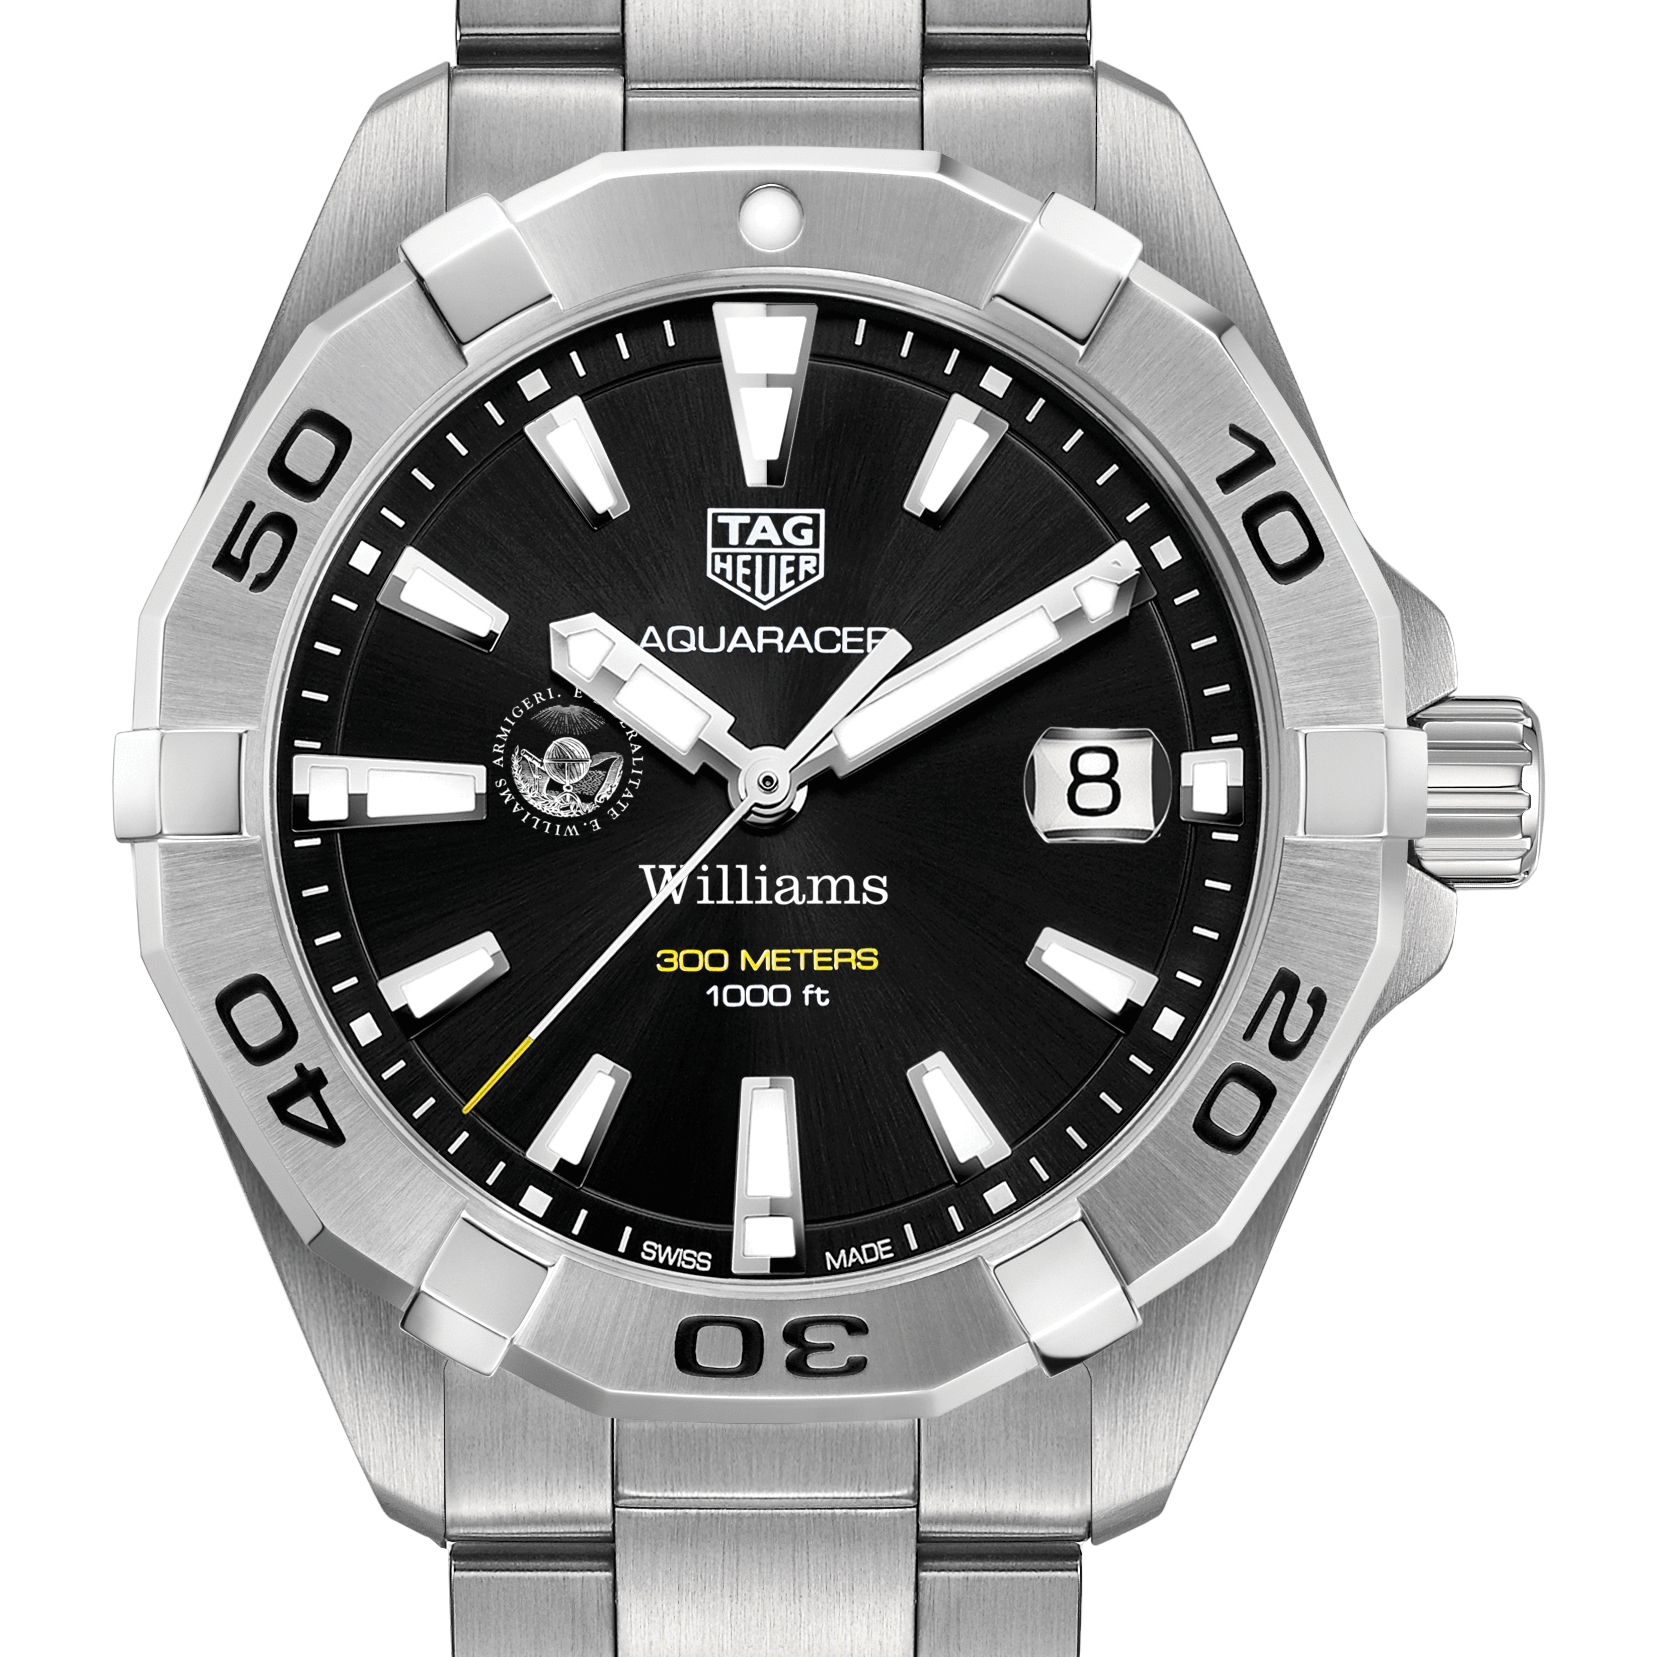 Williams College Men's TAG Heuer Steel Aquaracer with Black Dial